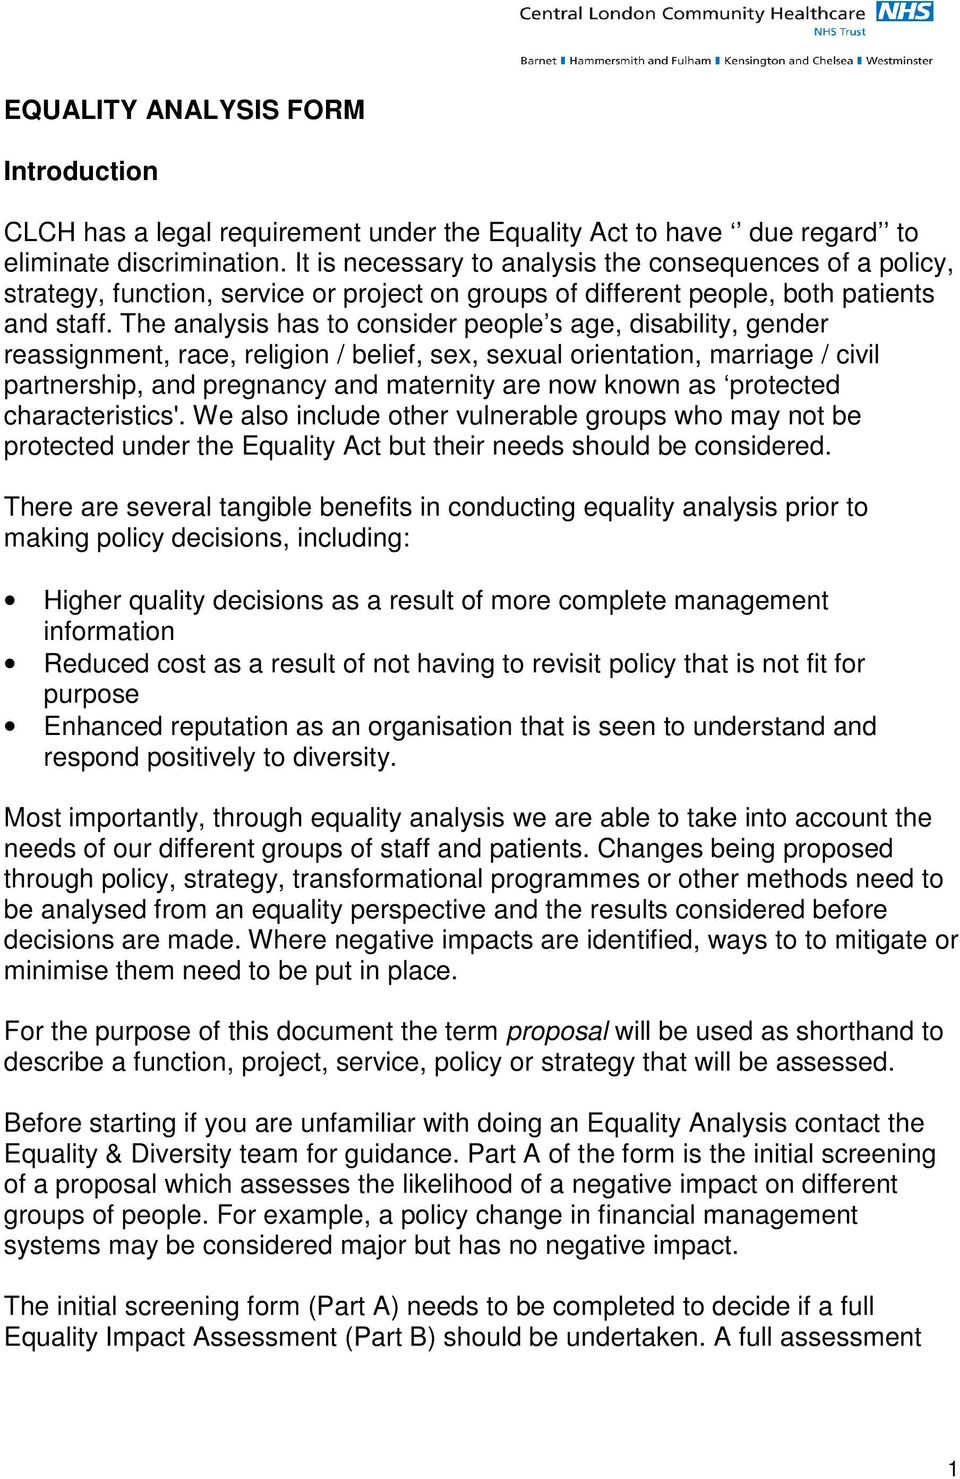 The analysis has to consider people s age, disability, gender reassignment, race, religion / belief, sex, sexual orientation, marriage / civil partnership, and pregnancy and maternity are now known